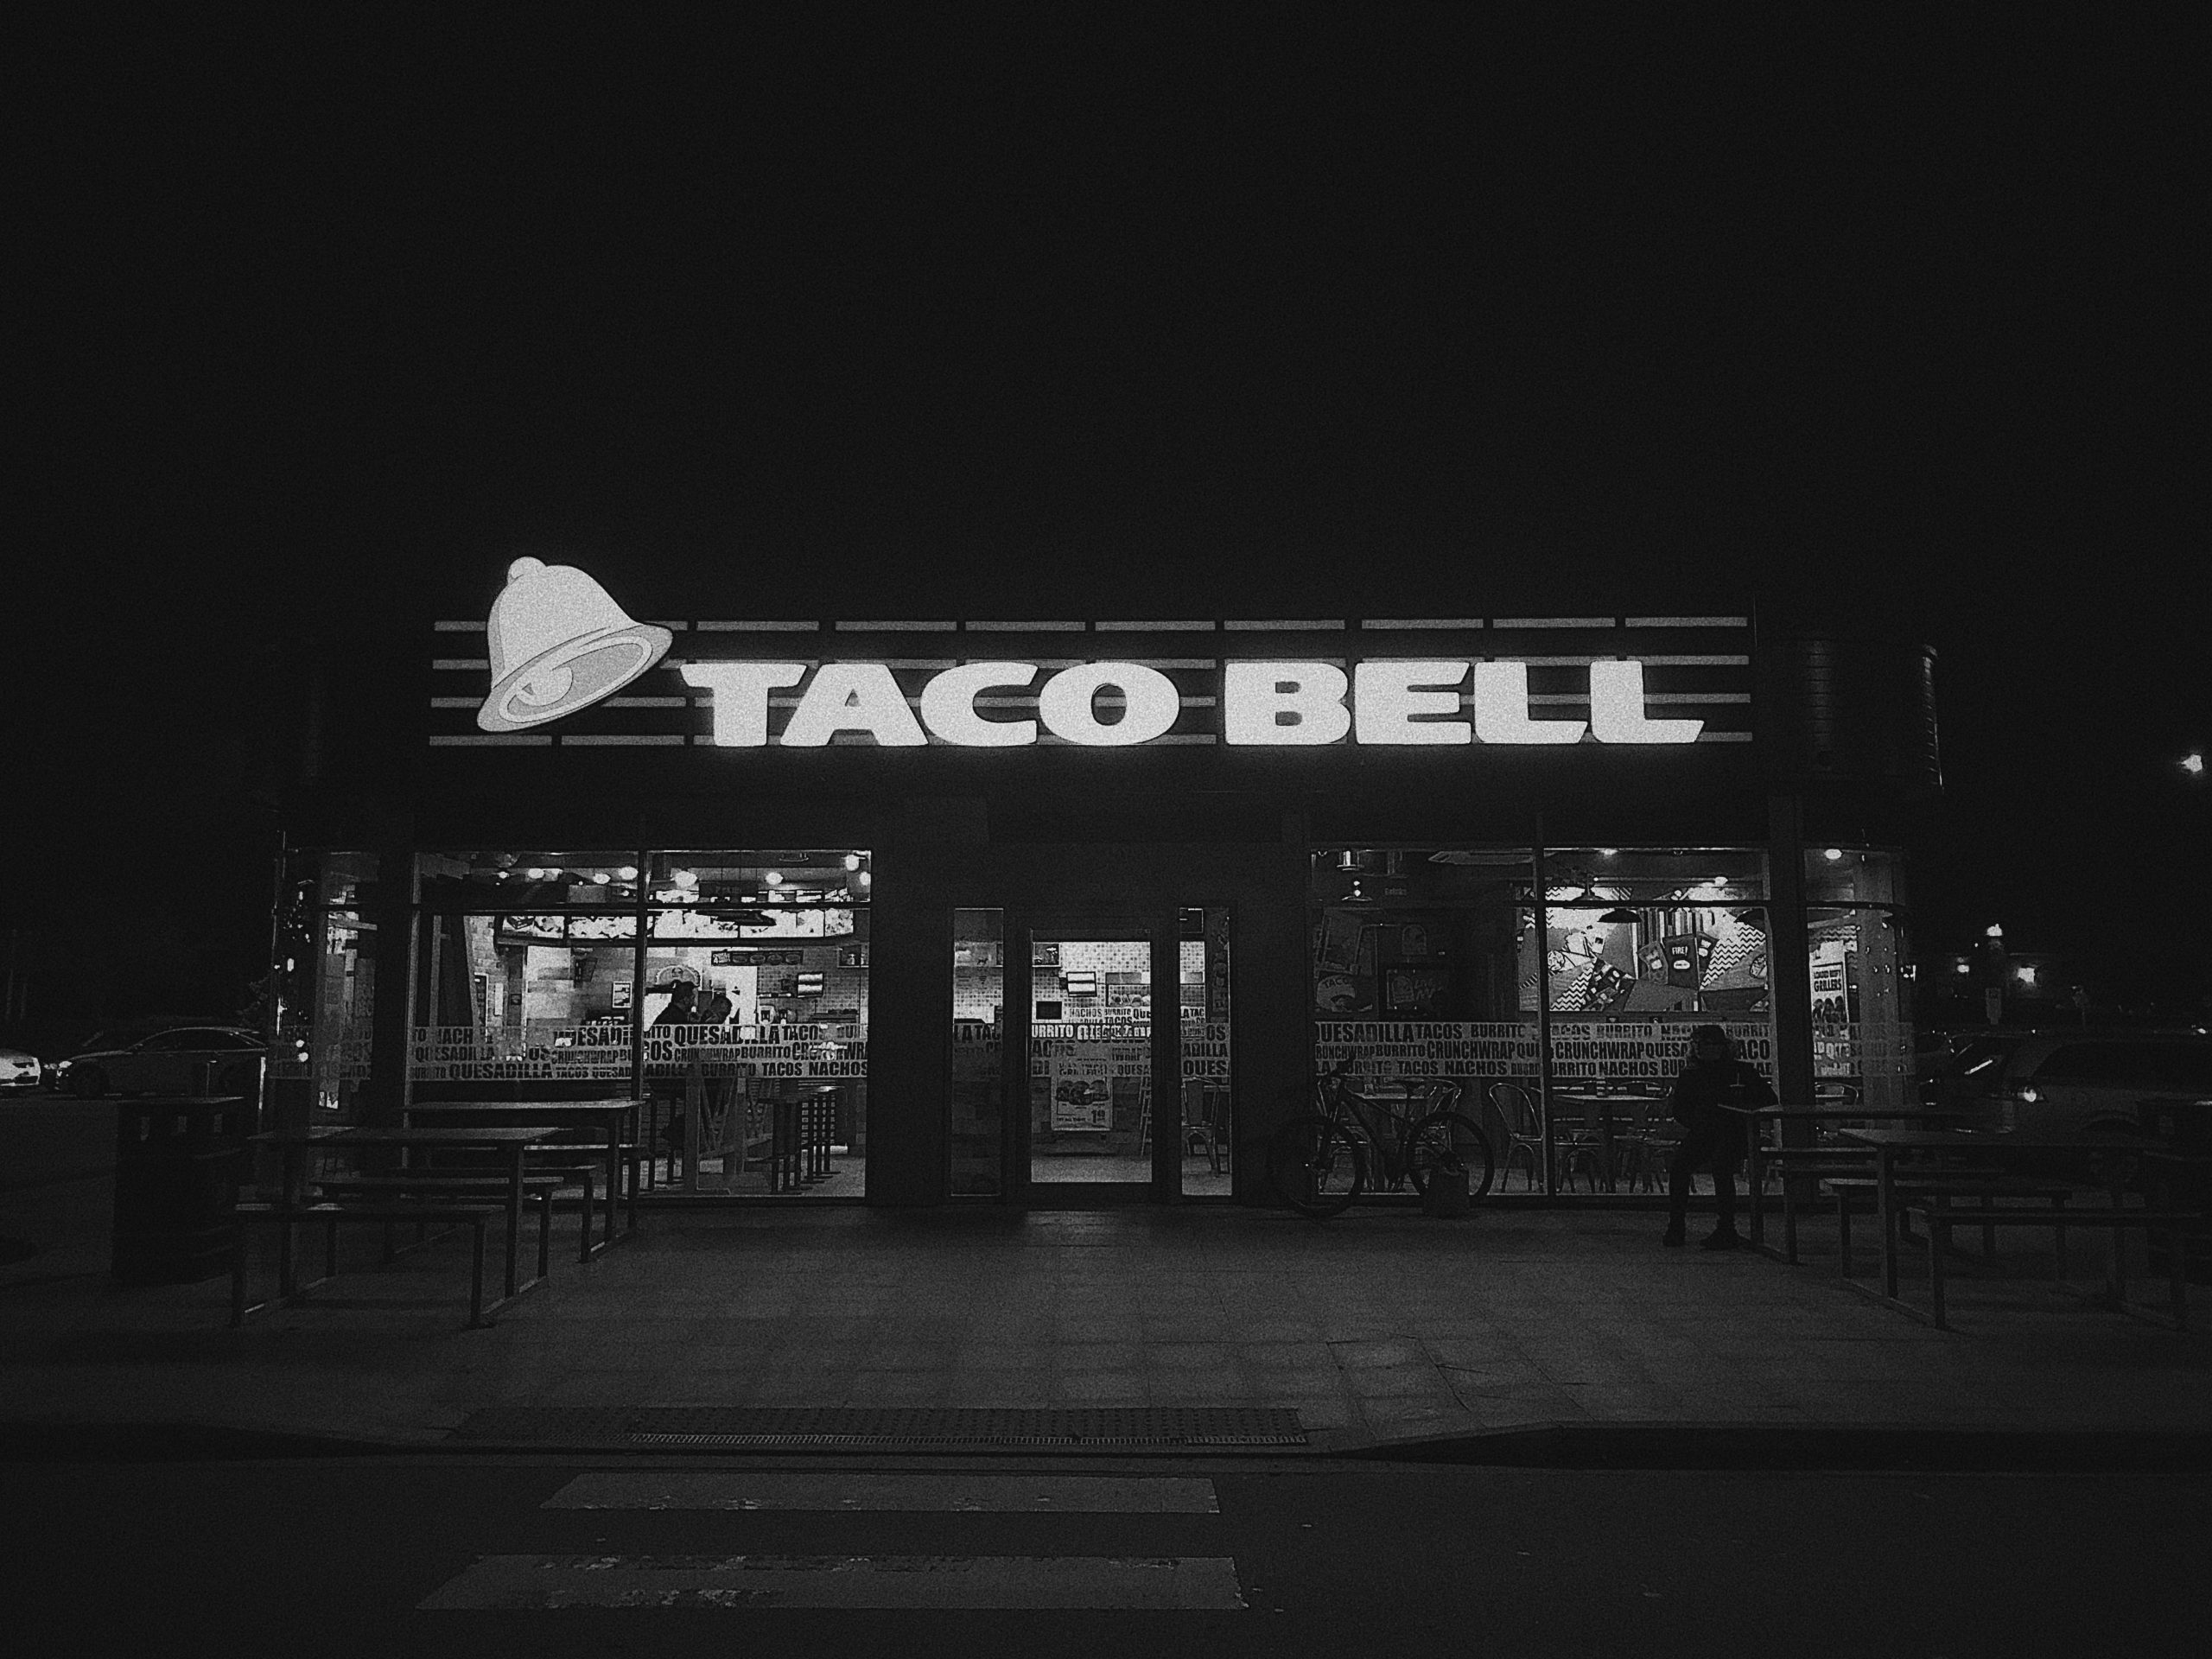 Taco Bell in Cleethorpes, UK